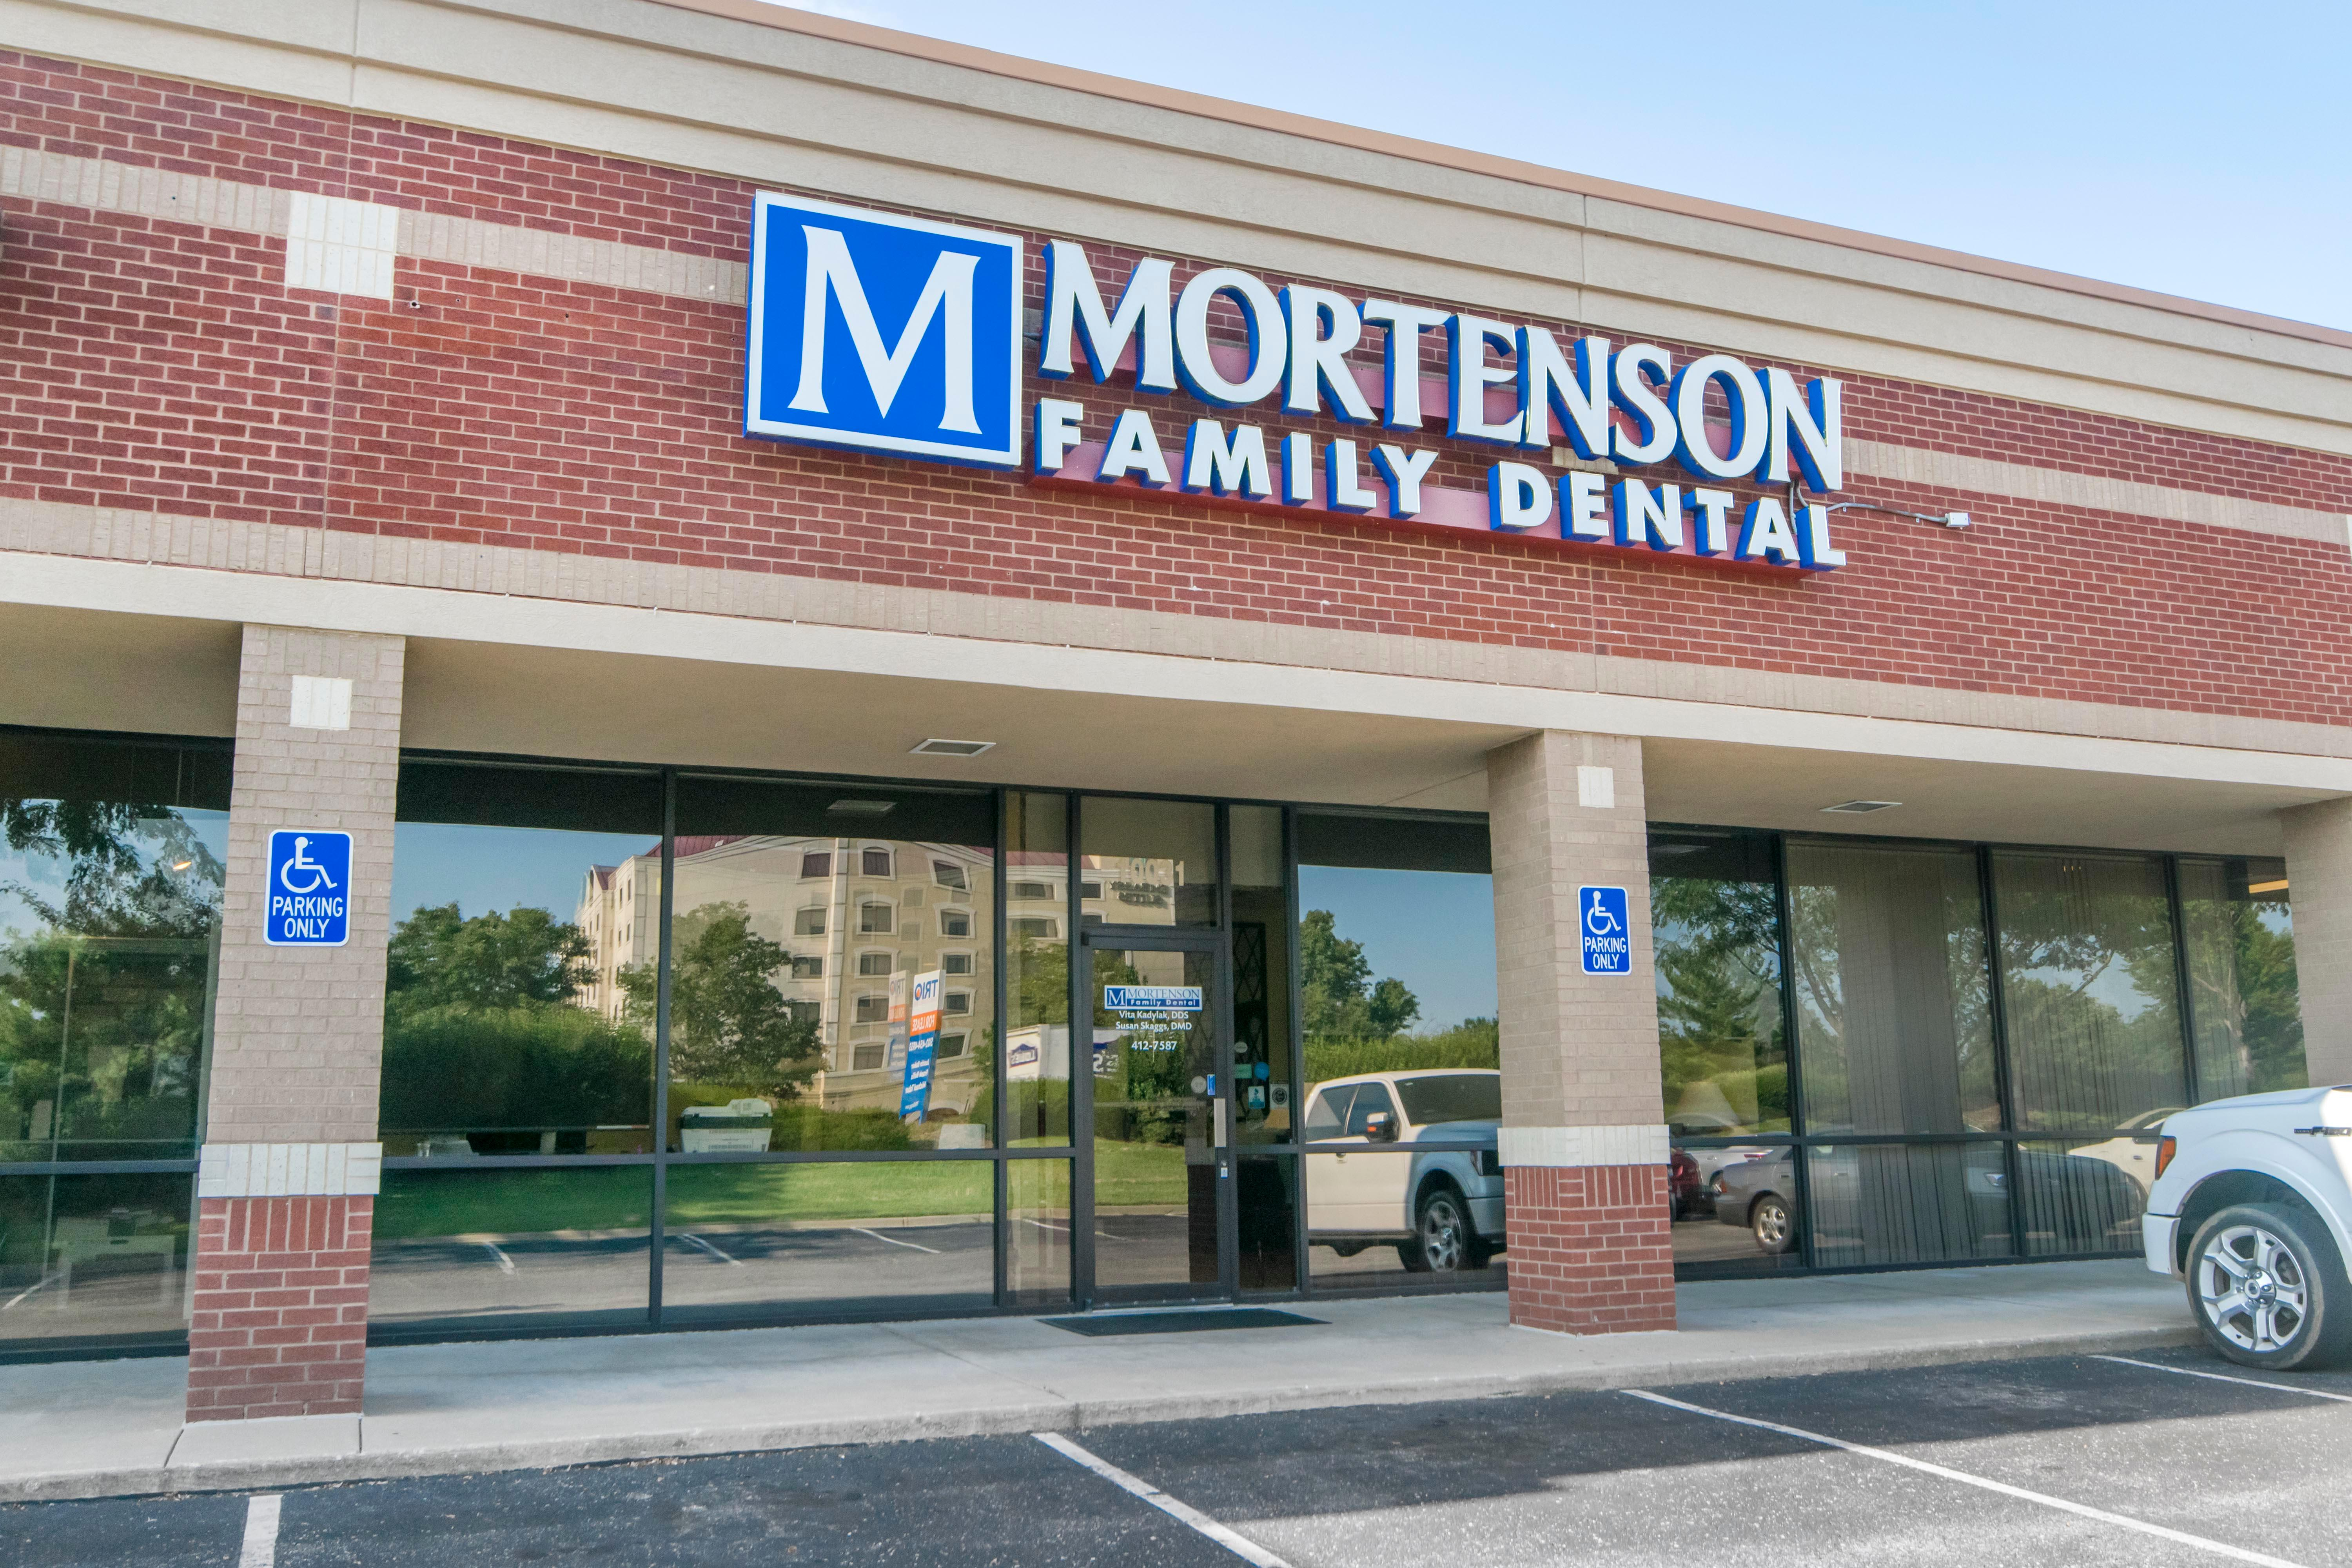 Mortenson Family Dental image 4